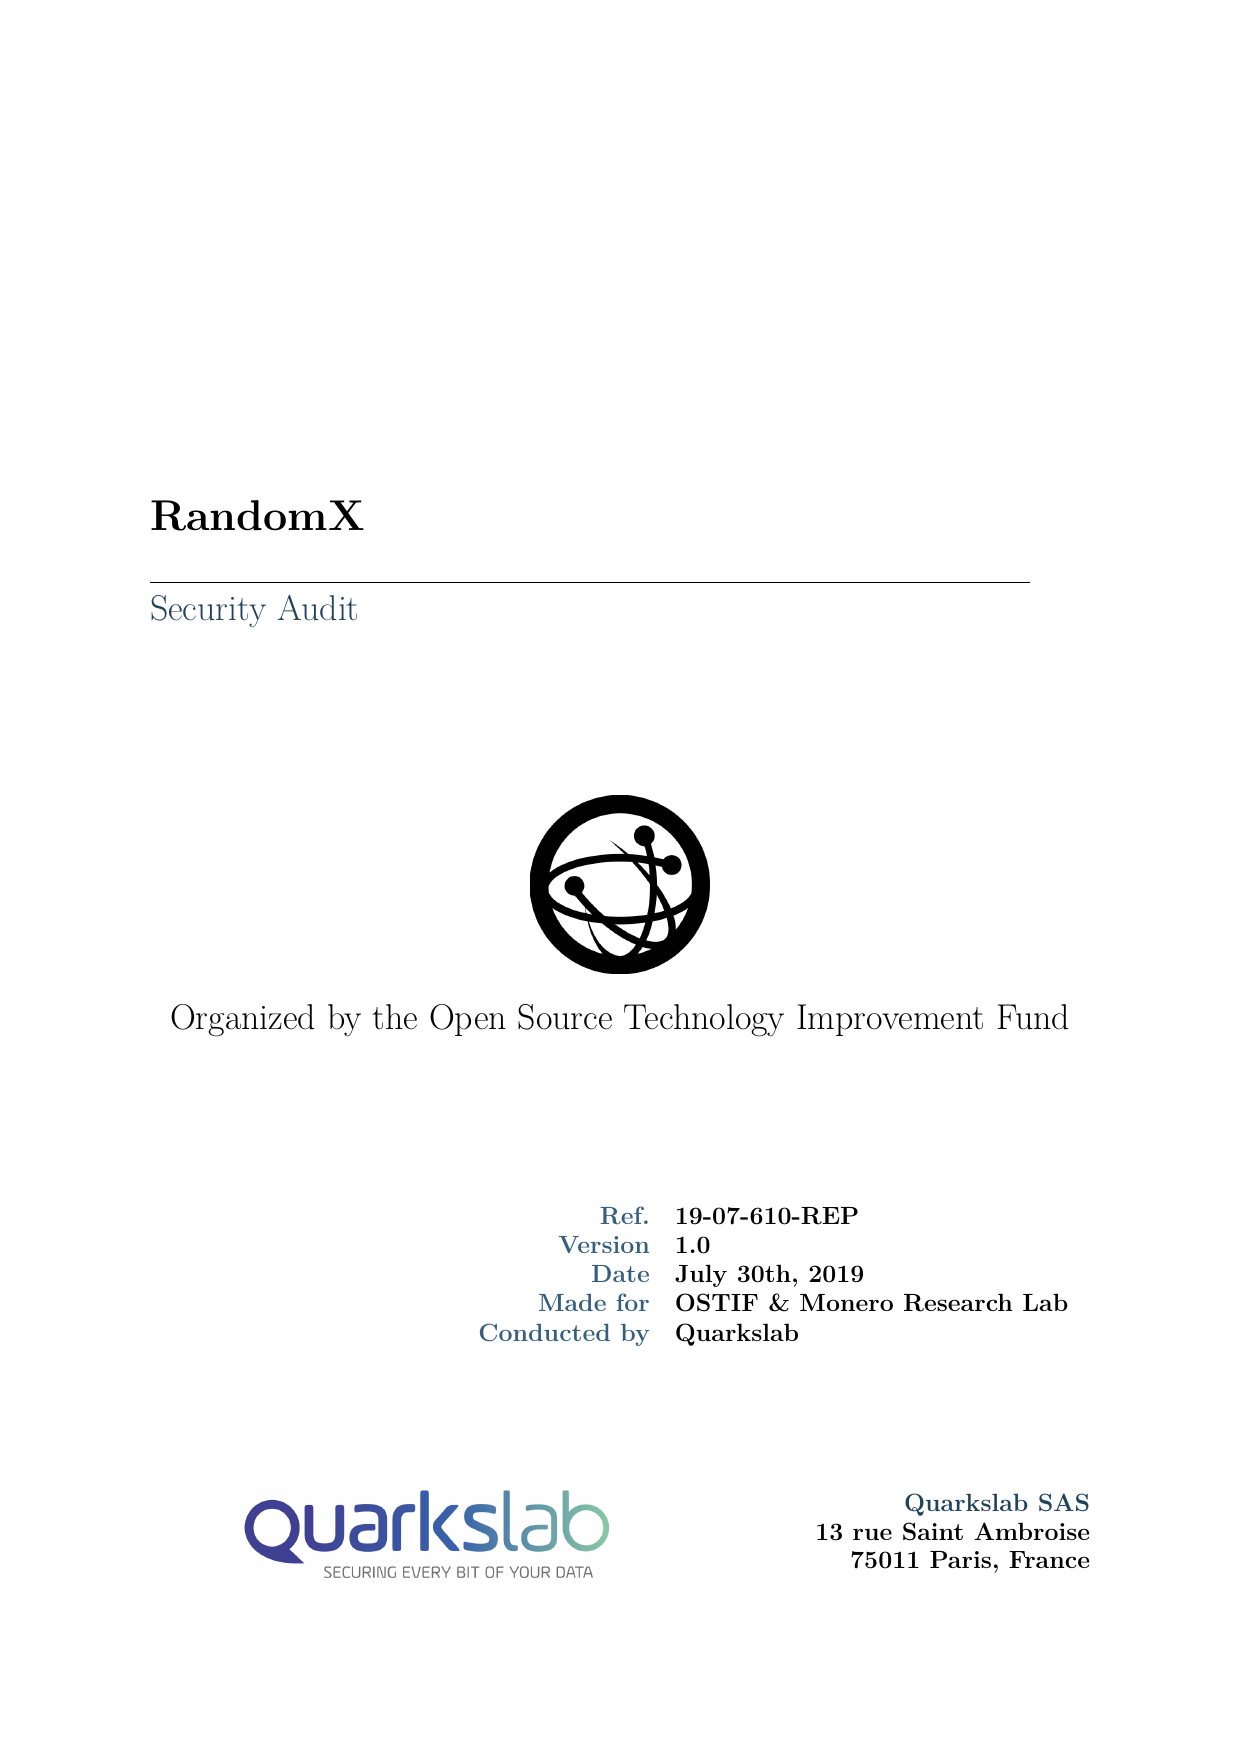 First page of the 'Report-Quarkslab1' PDF